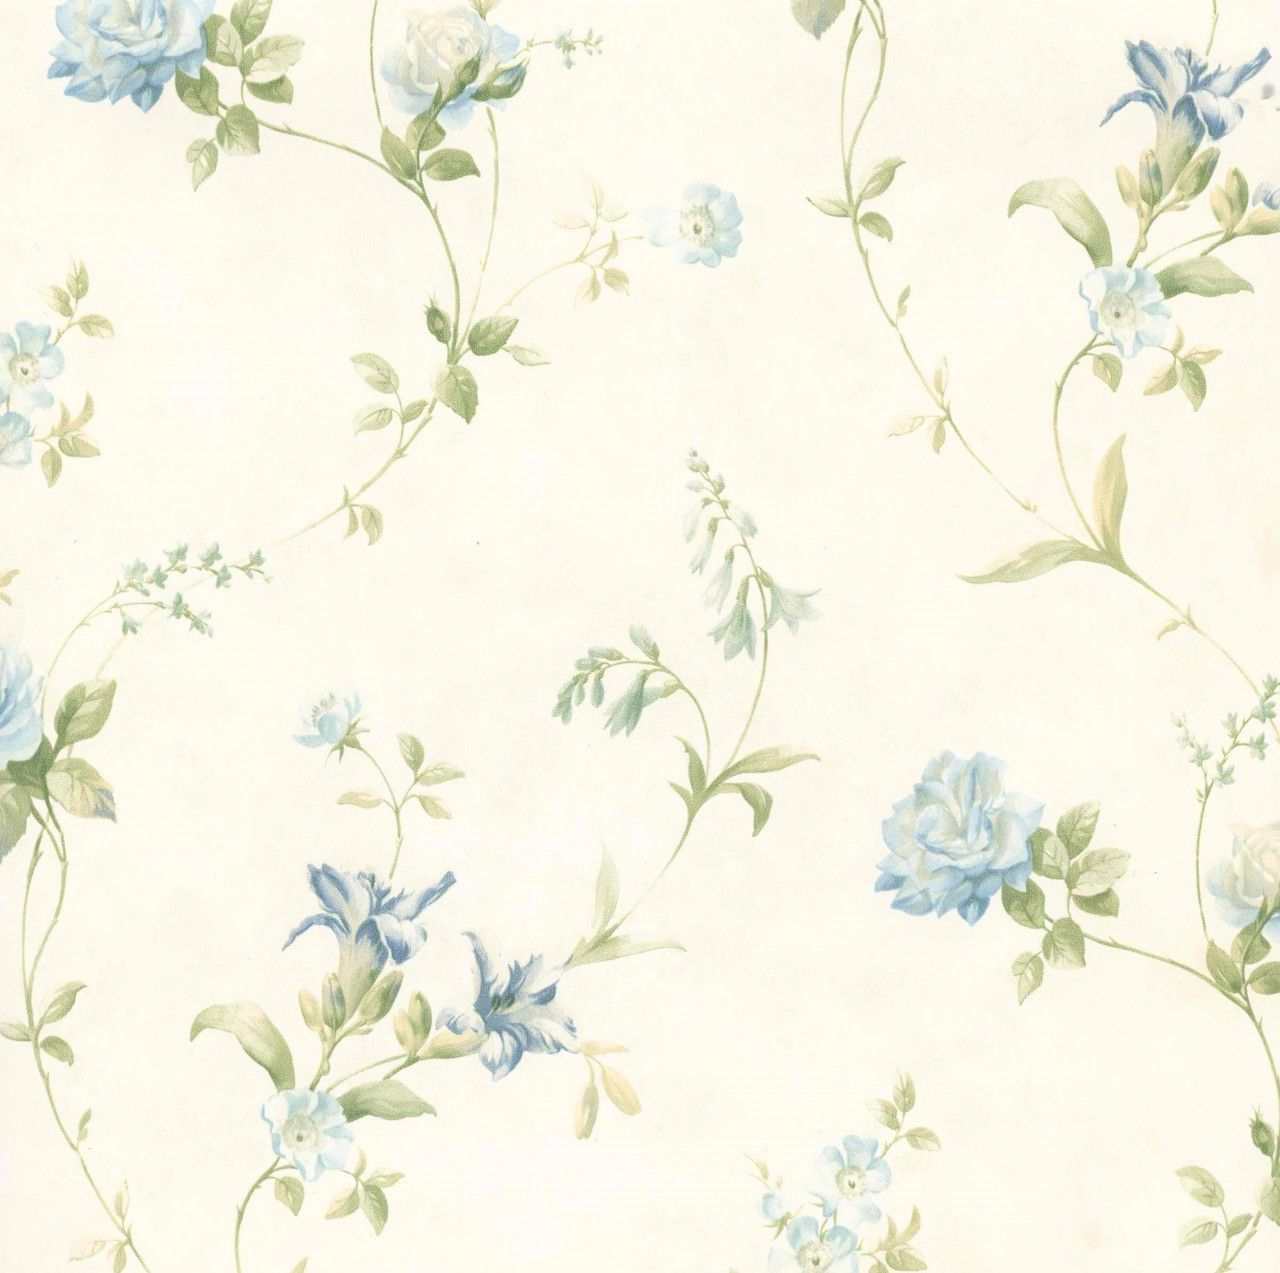 Wallpaper For Kitchen Texture: Wallpaper For Kitchen Texture - Google Search